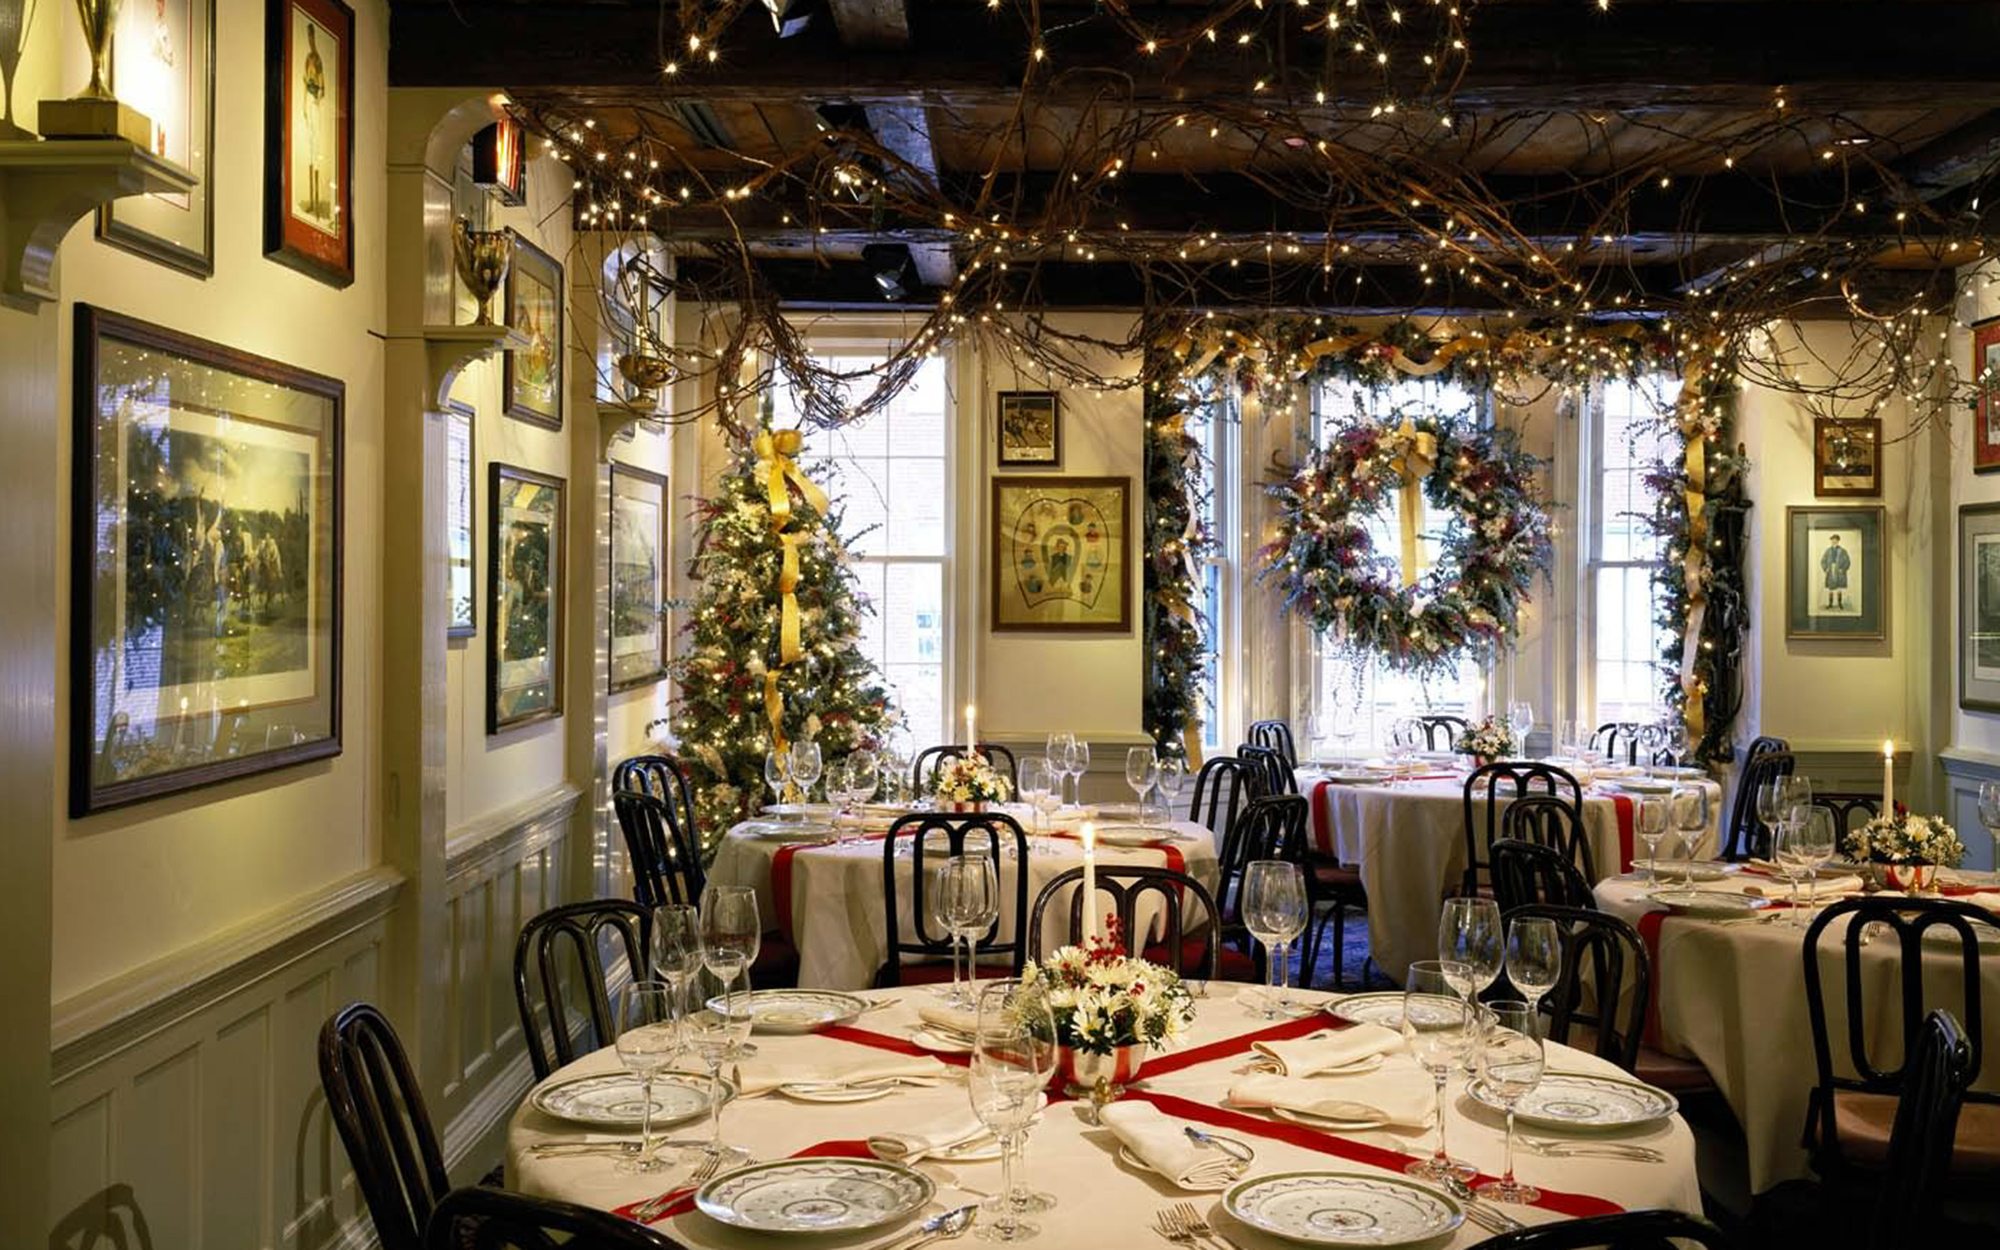 Best Holiday Restaurants in the U.S.: 1789, Washington, D.C.